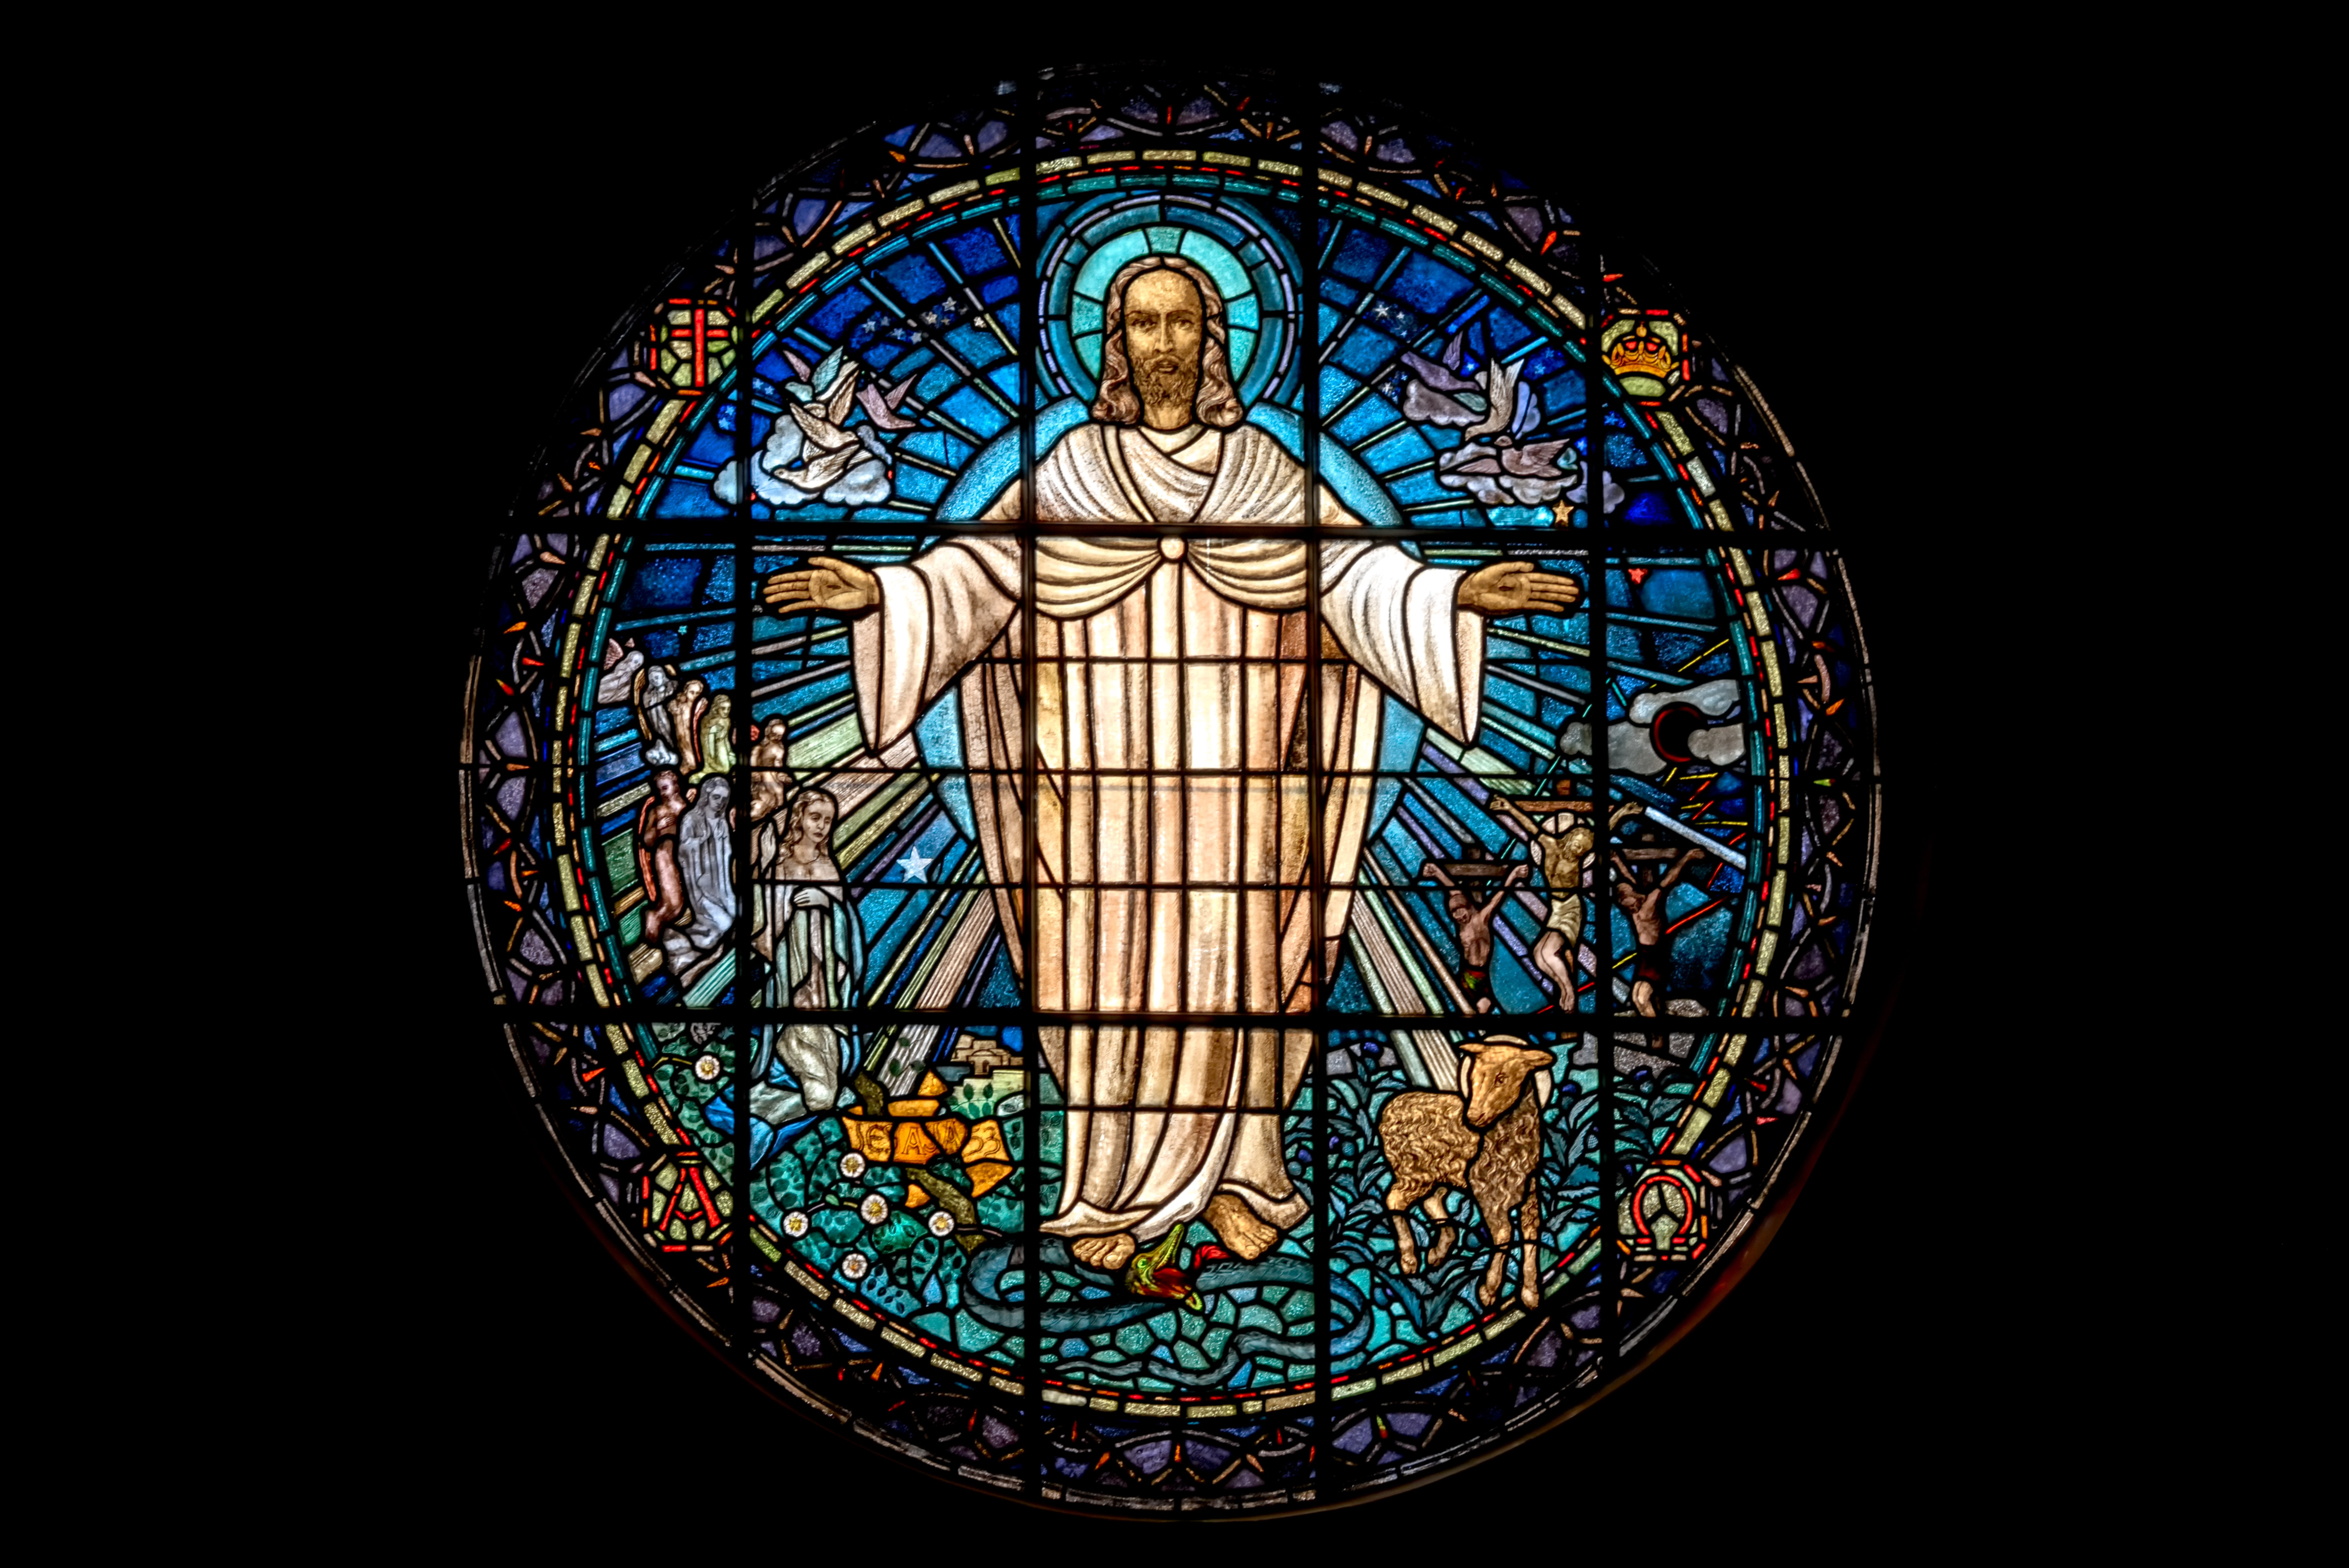 Stained Glass Jesus image